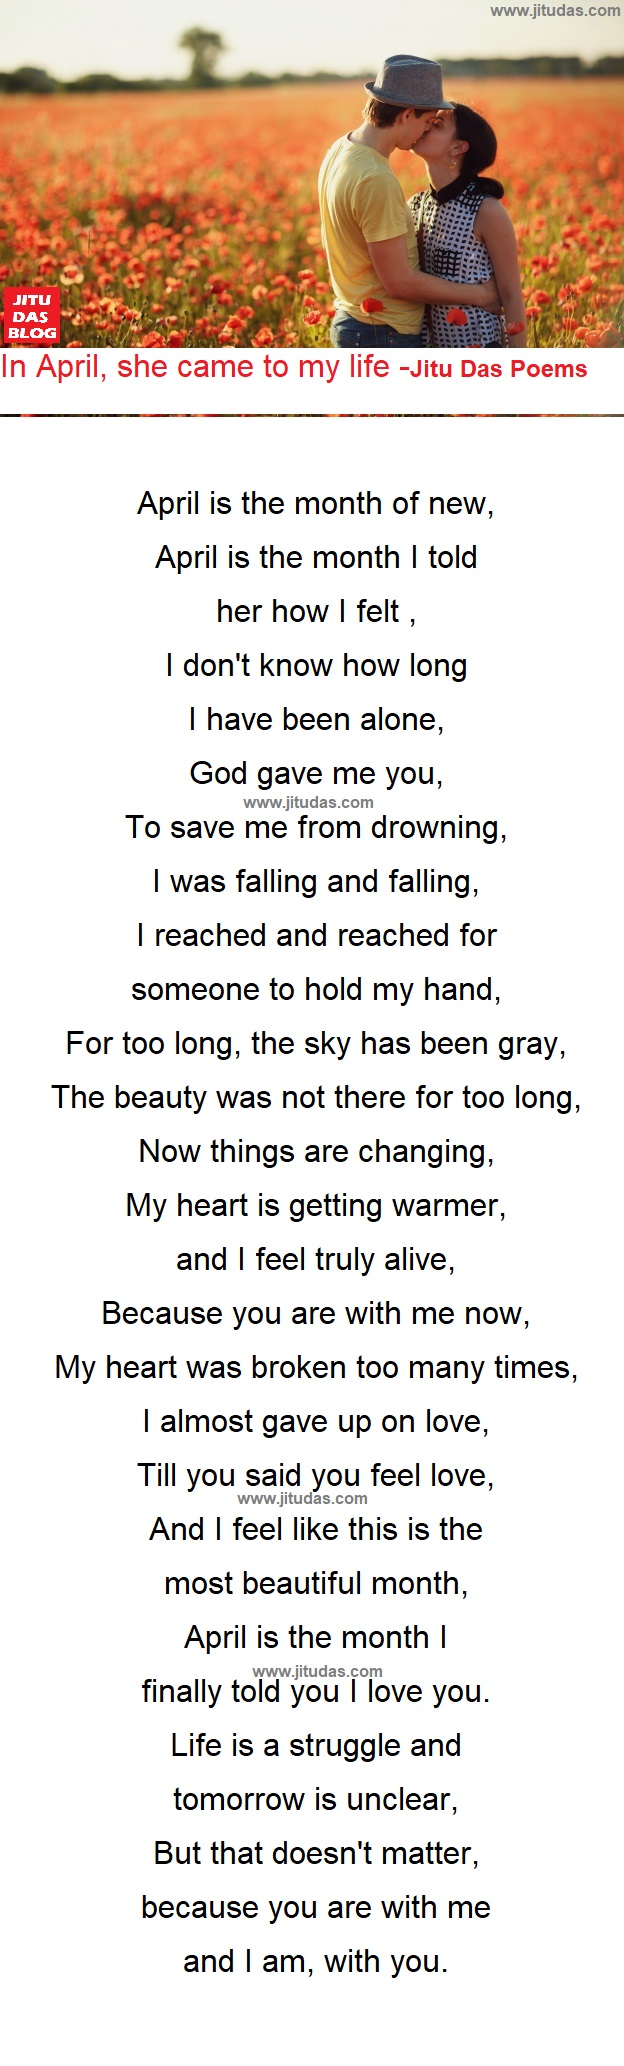 April, She came to my life romantic poem by Jitu Das poems 2018